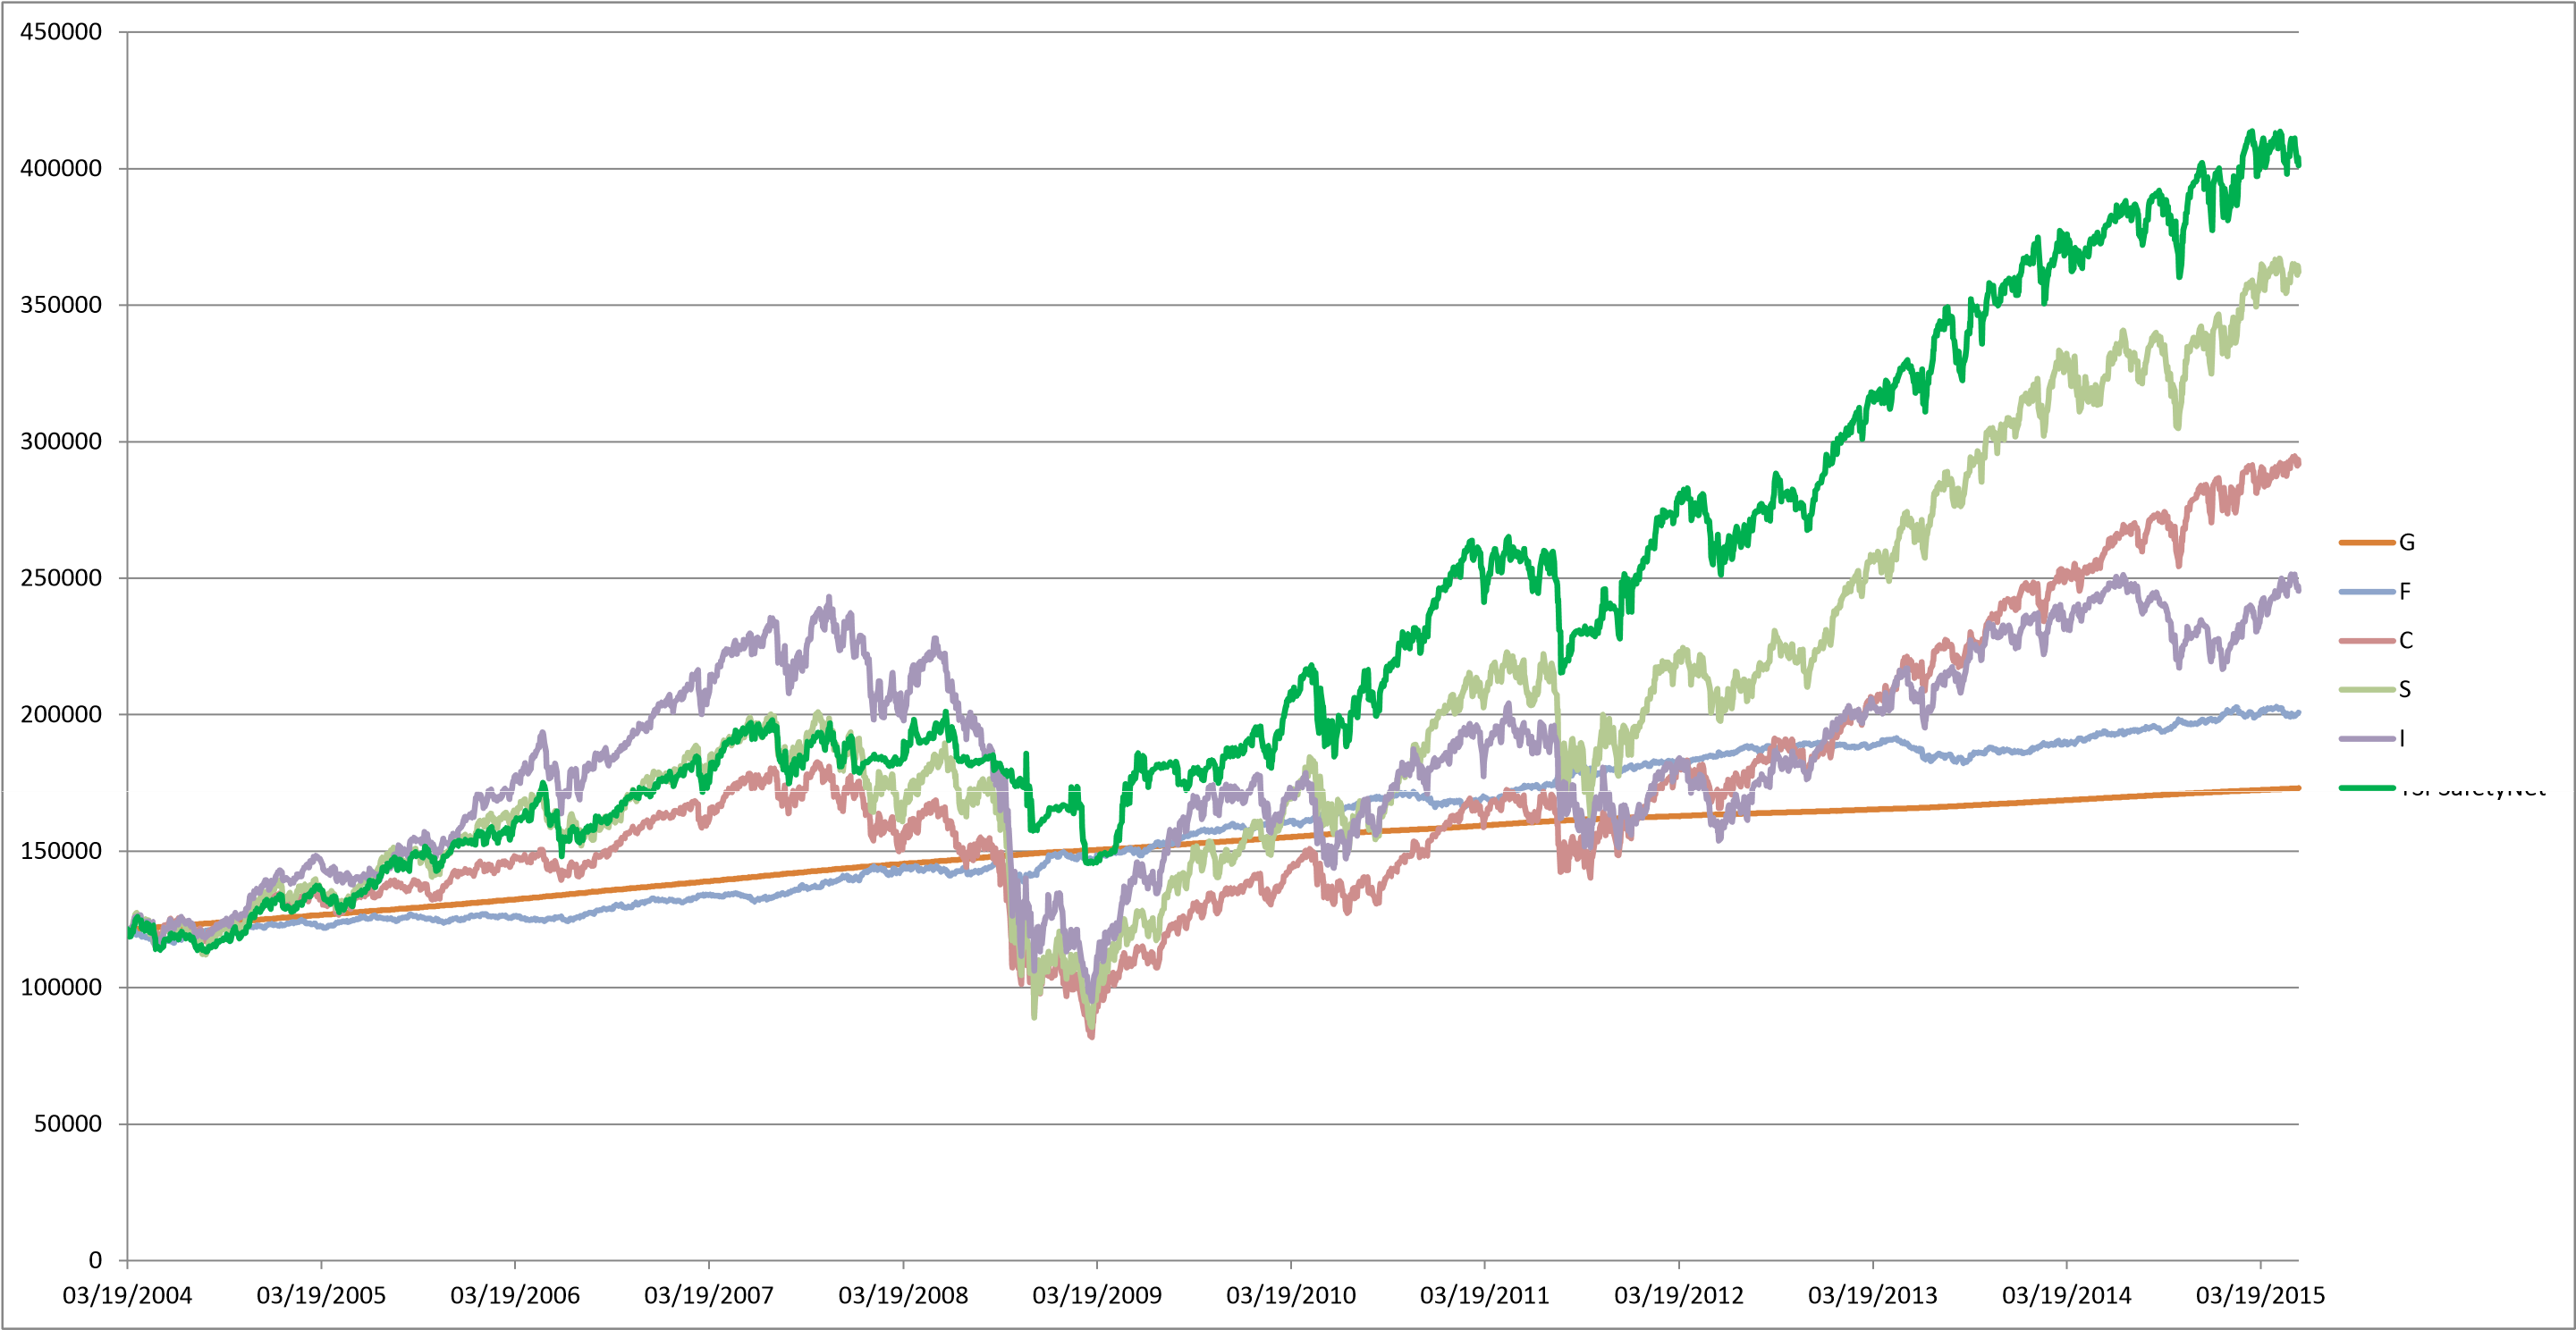 The 40 Week Moving Average to Analyze Market Trends